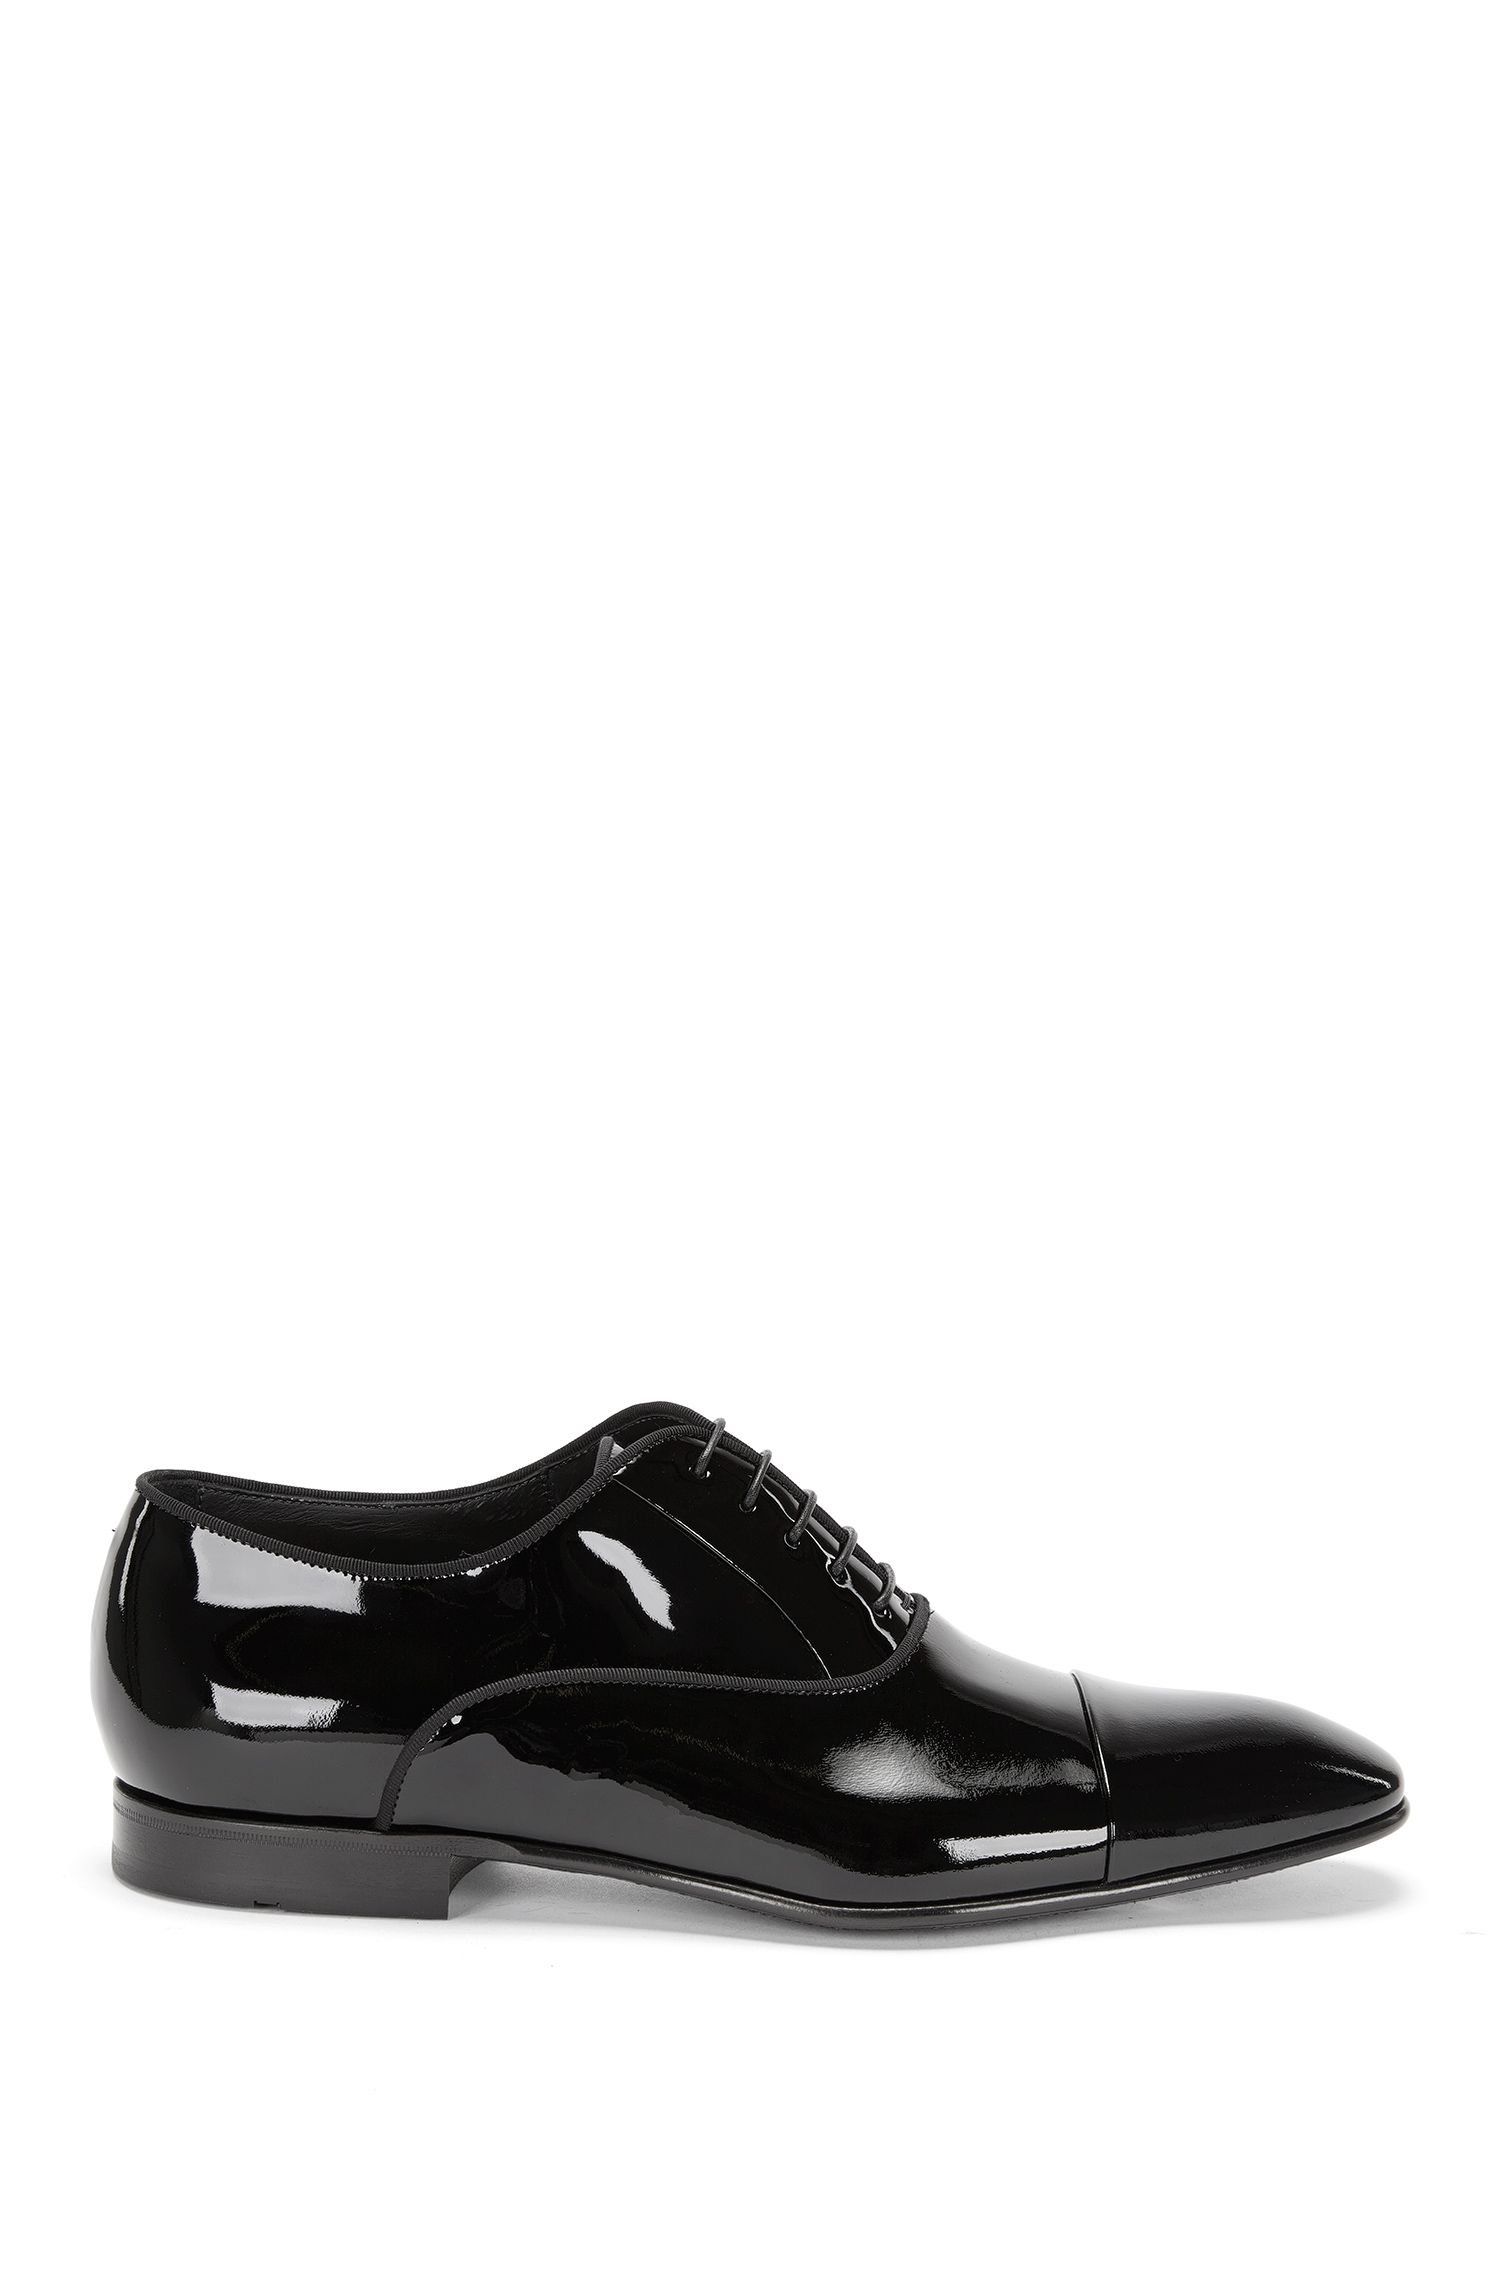 Chaussures à lacets en cuir vernis de style Oxford : « Evening_Oxfr_pact »